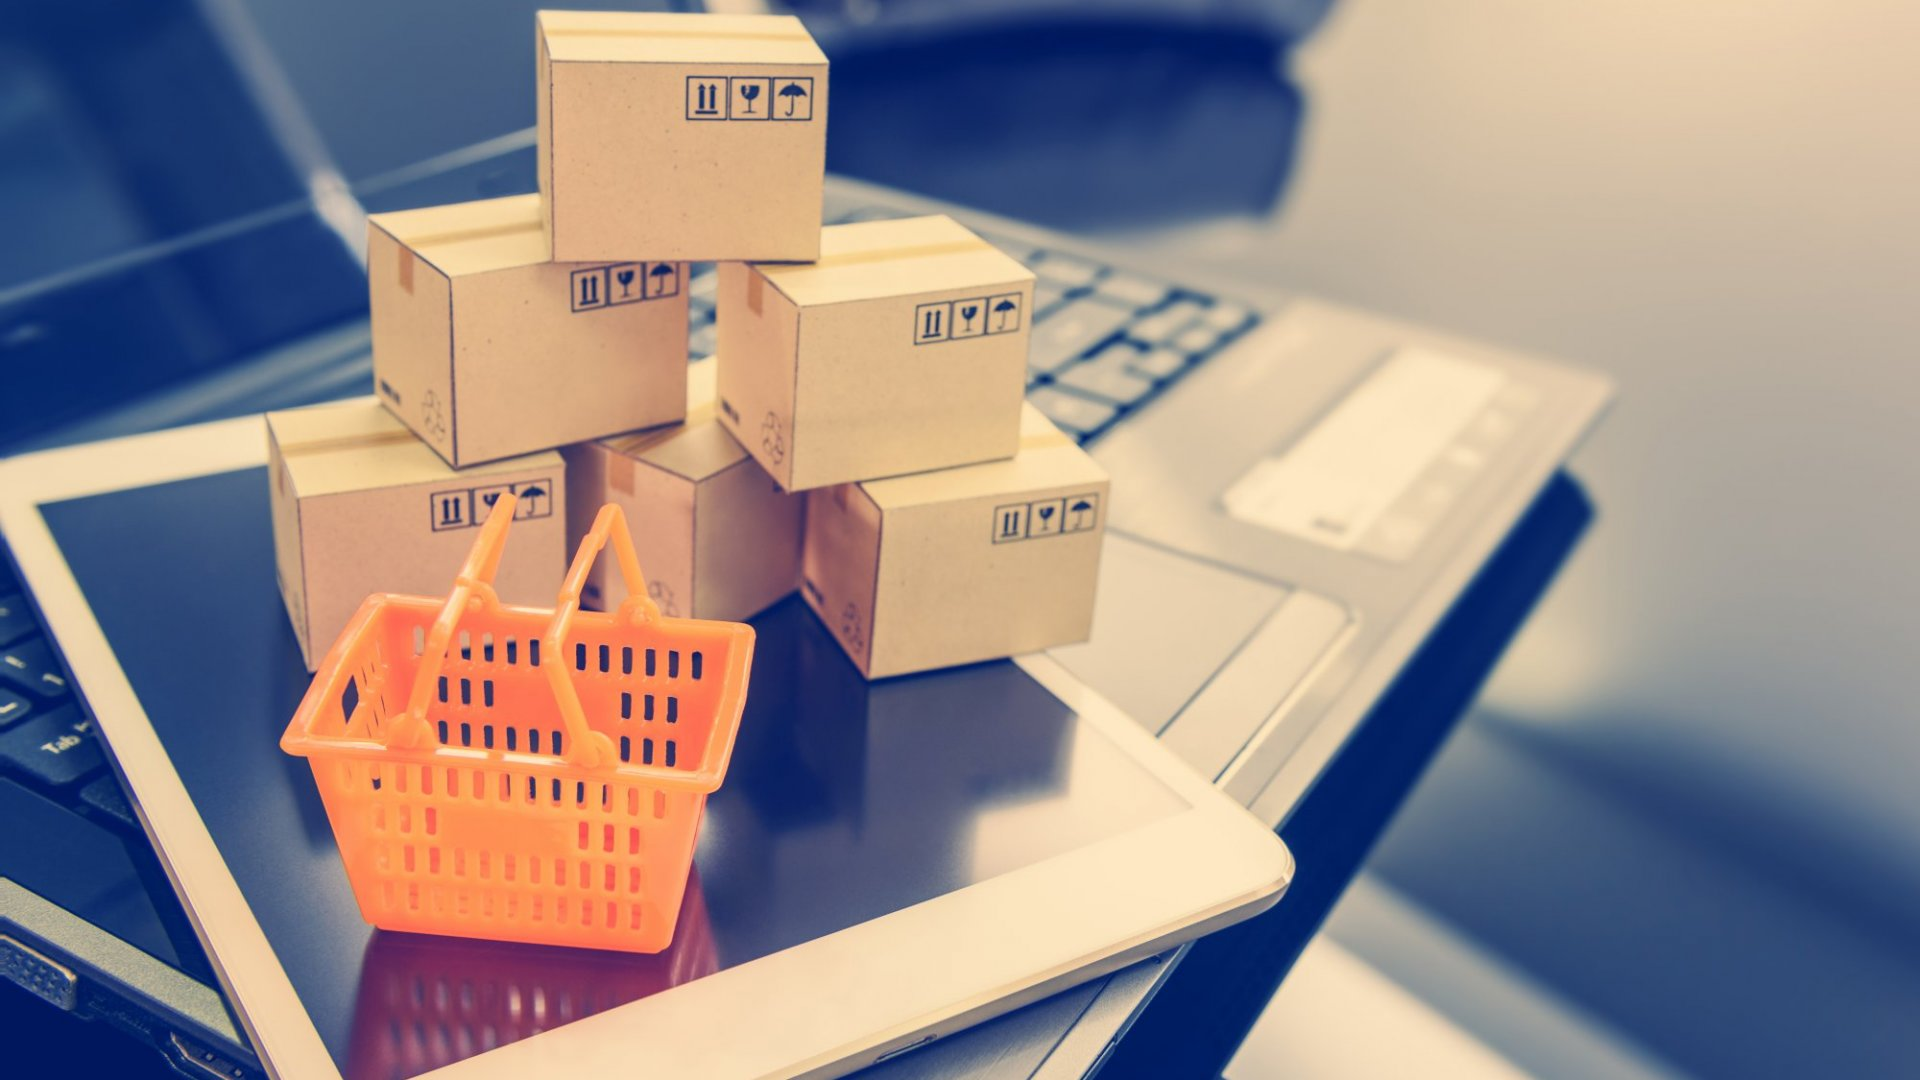 I Just Started an E-Commerce Business. Here's What I've Learned Over the Past 30 Days